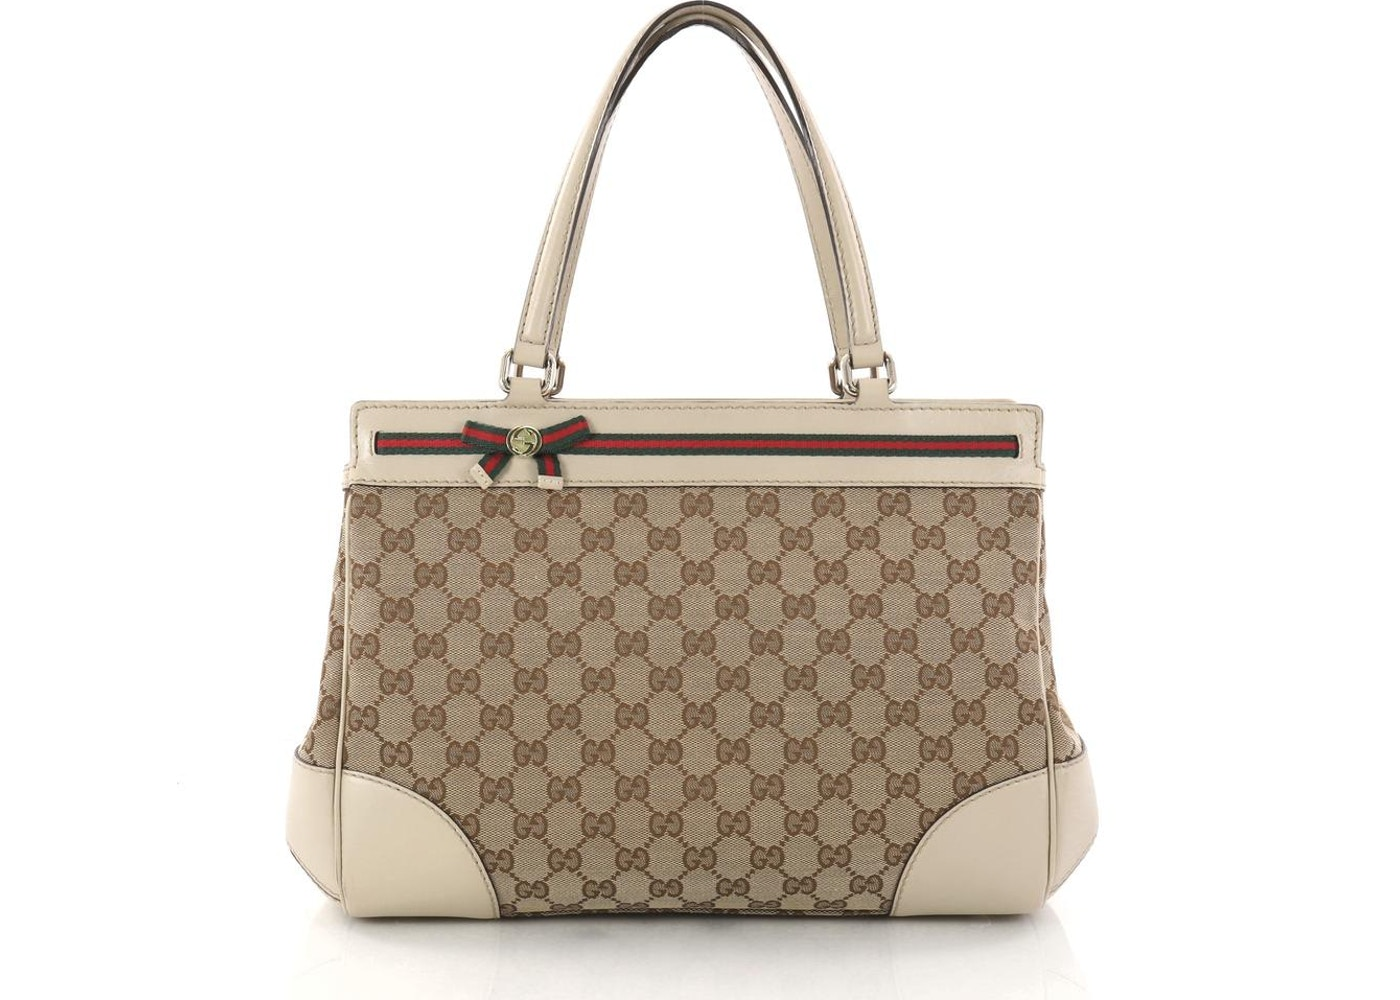 7393a7c8f1c Gucci Mayfair Tote Monogram GG Medium Off White. Monogram GG Medium Off  White